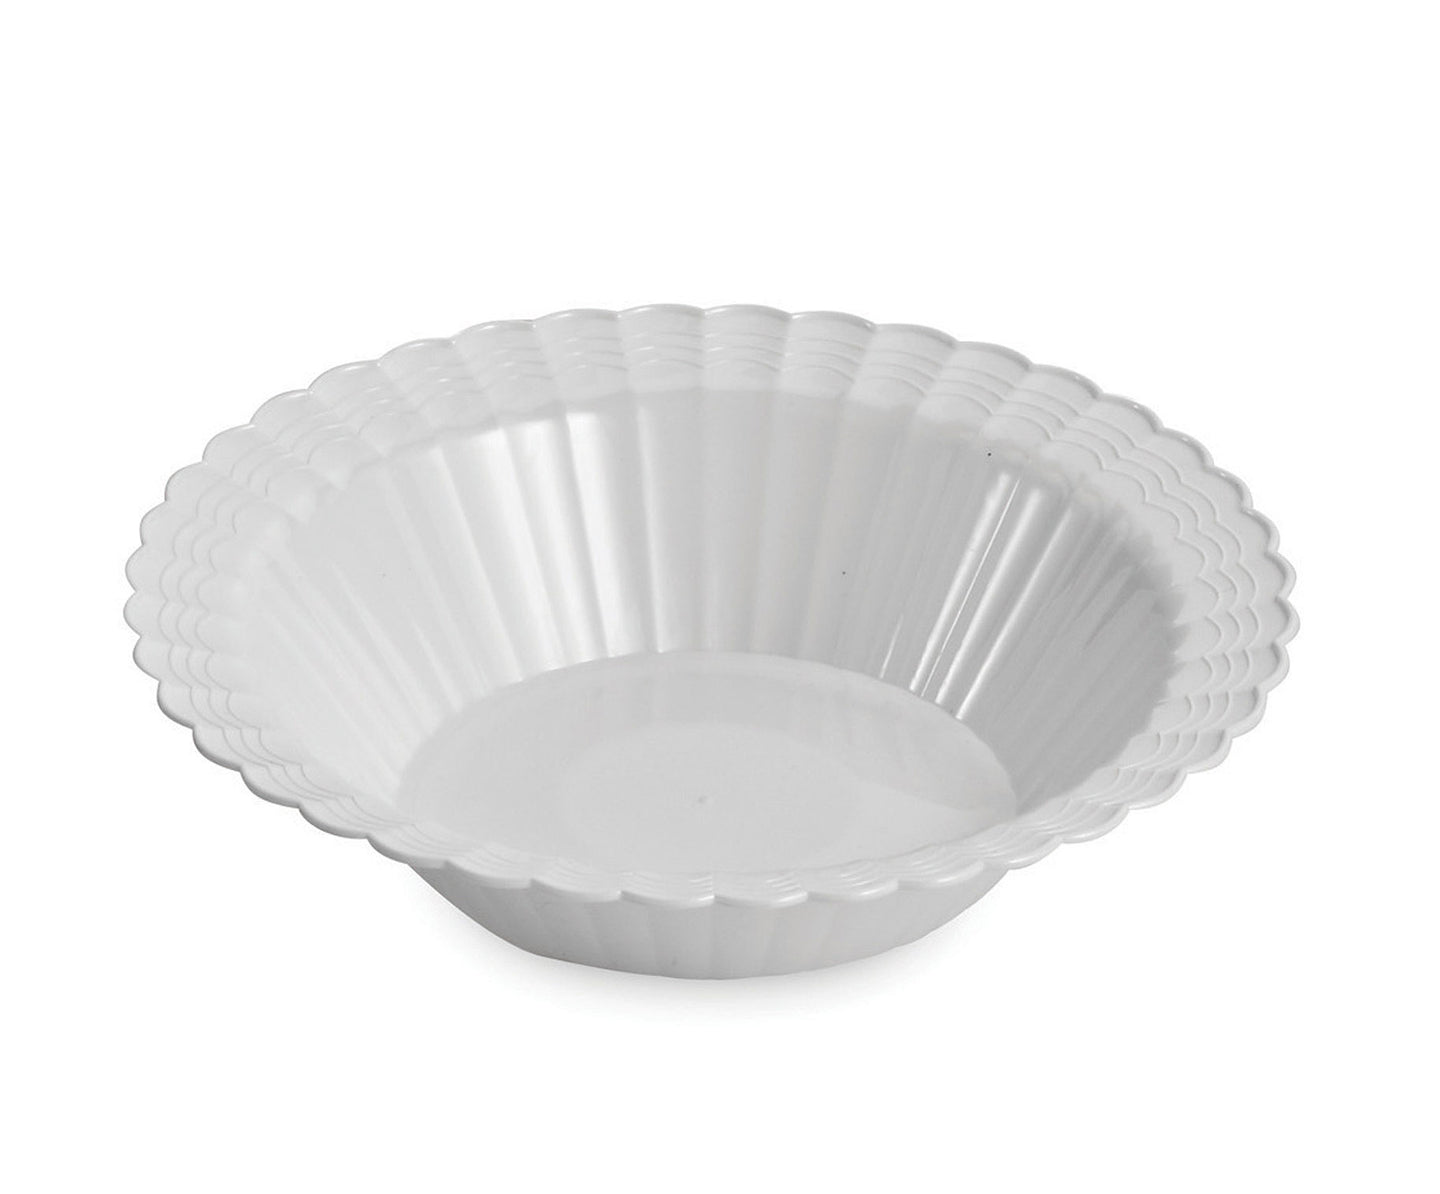 EMI-REB5W Resposable 5 oz Bowl - White